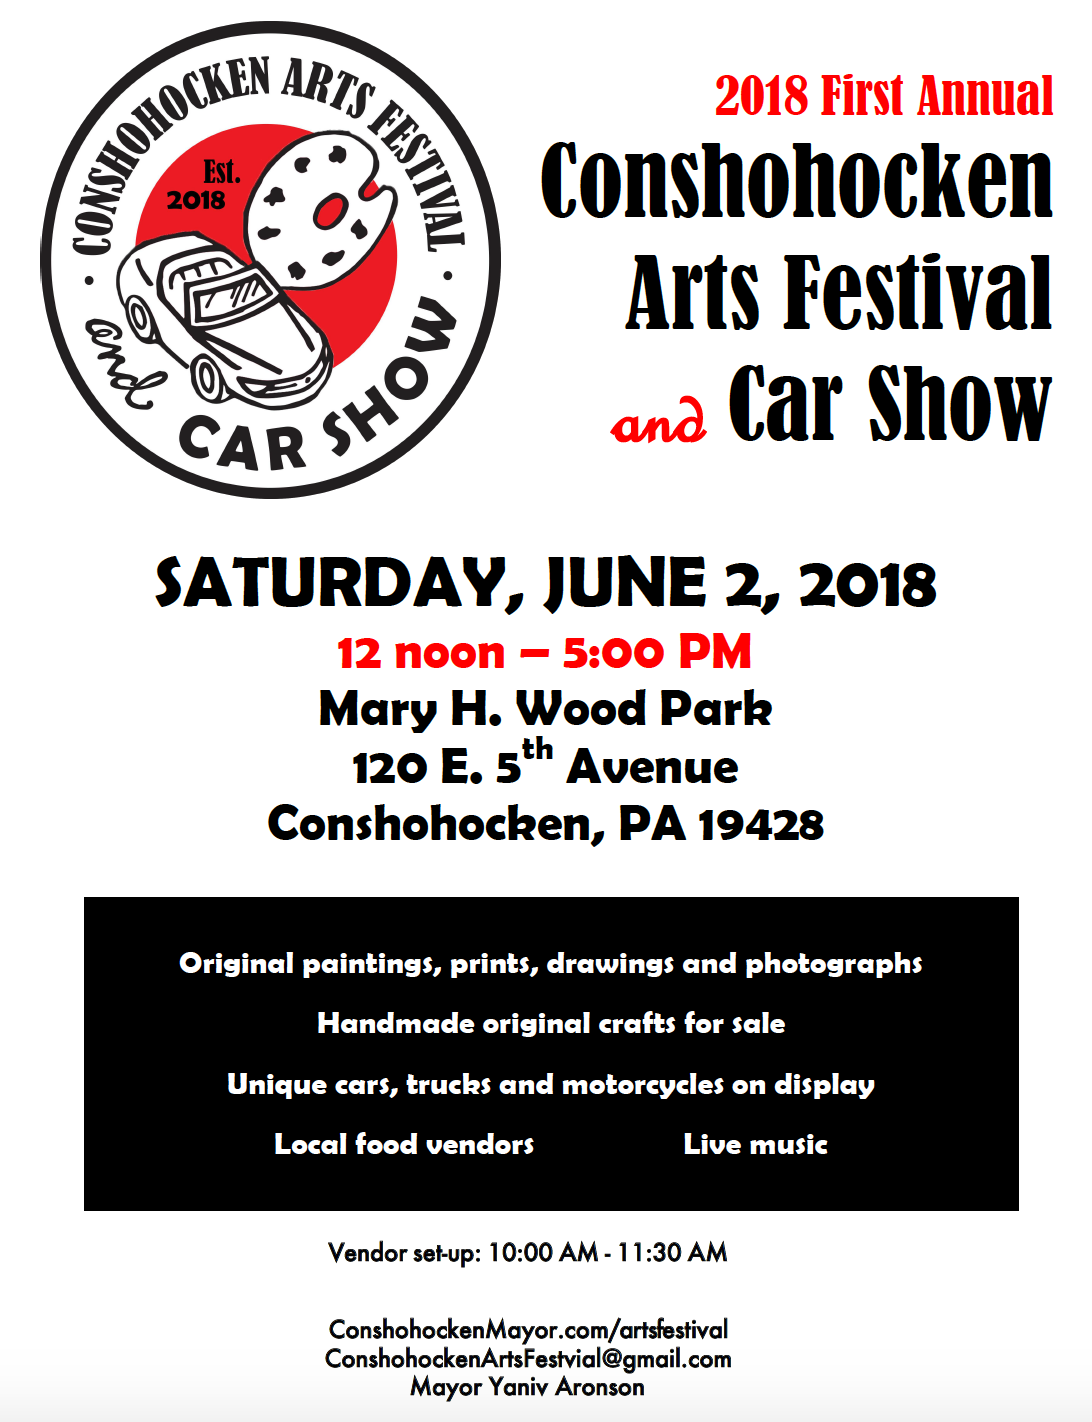 Arts Festival and Car Show